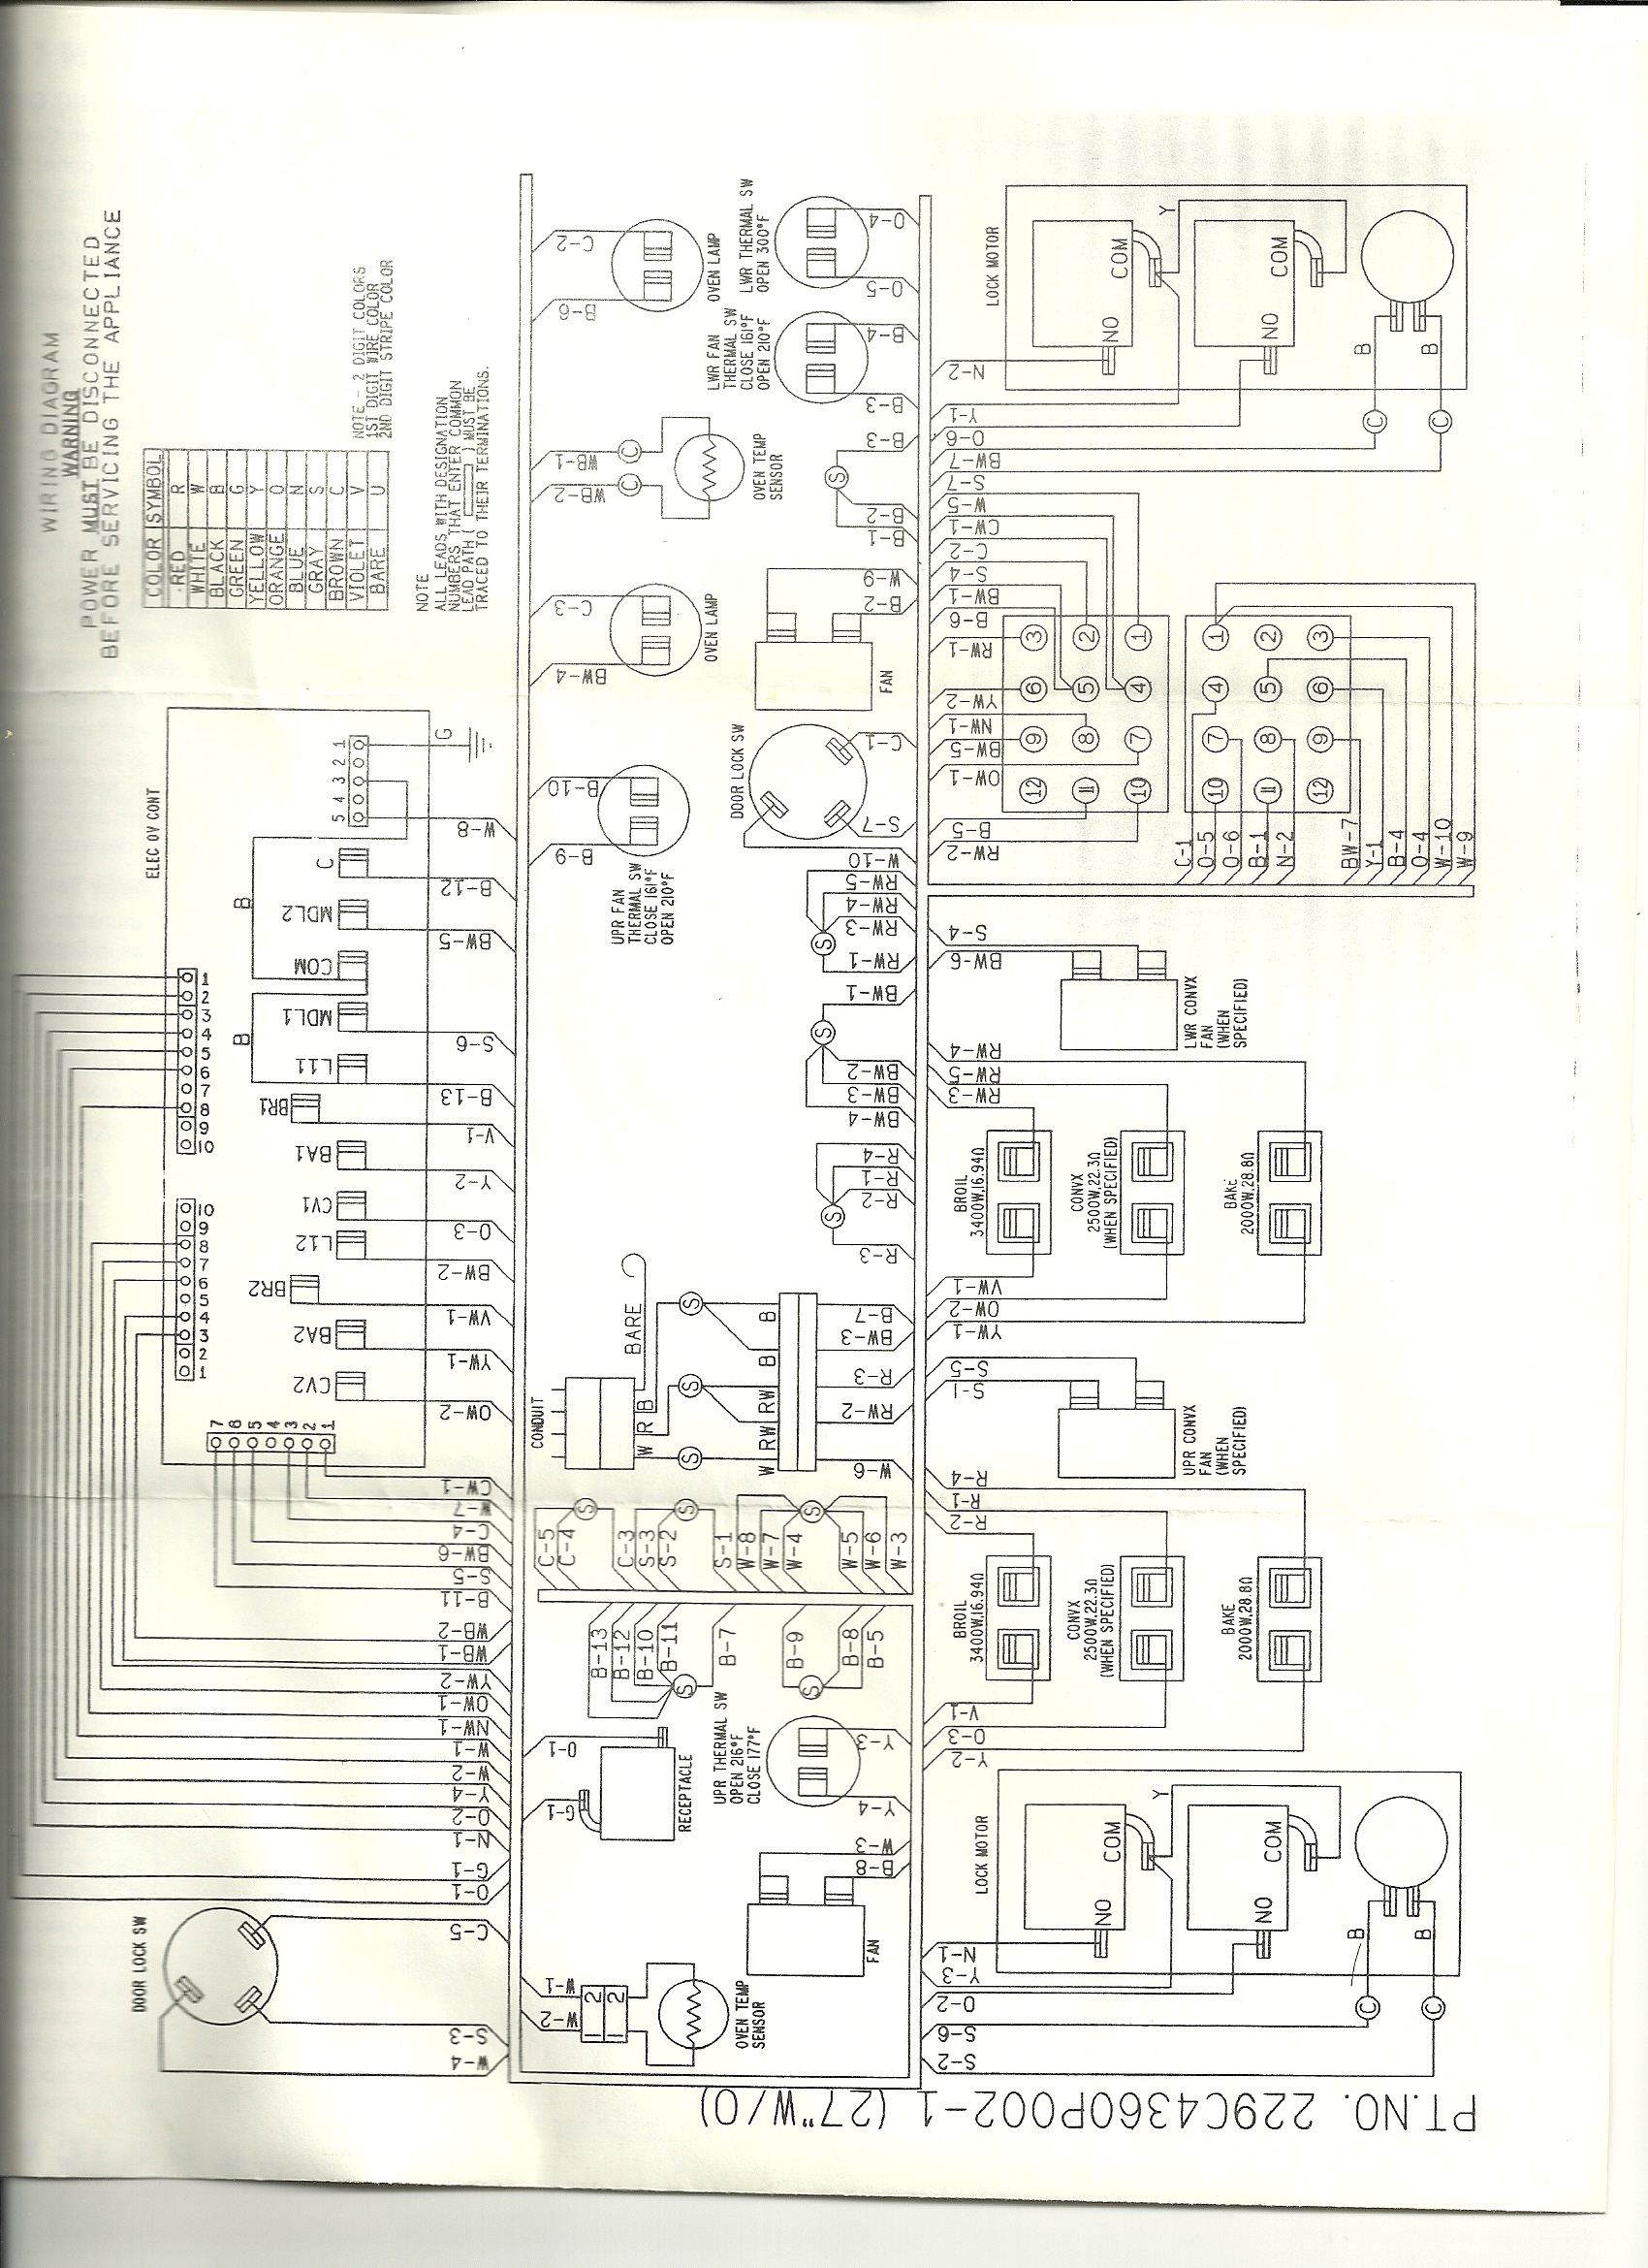 ge side by side refrigerator wiring diagram Collection-Ge Dryer Wiring Diagram Best Amazing Ge Schematics Gallery Electrical Circuit Diagram Ideas 1-o